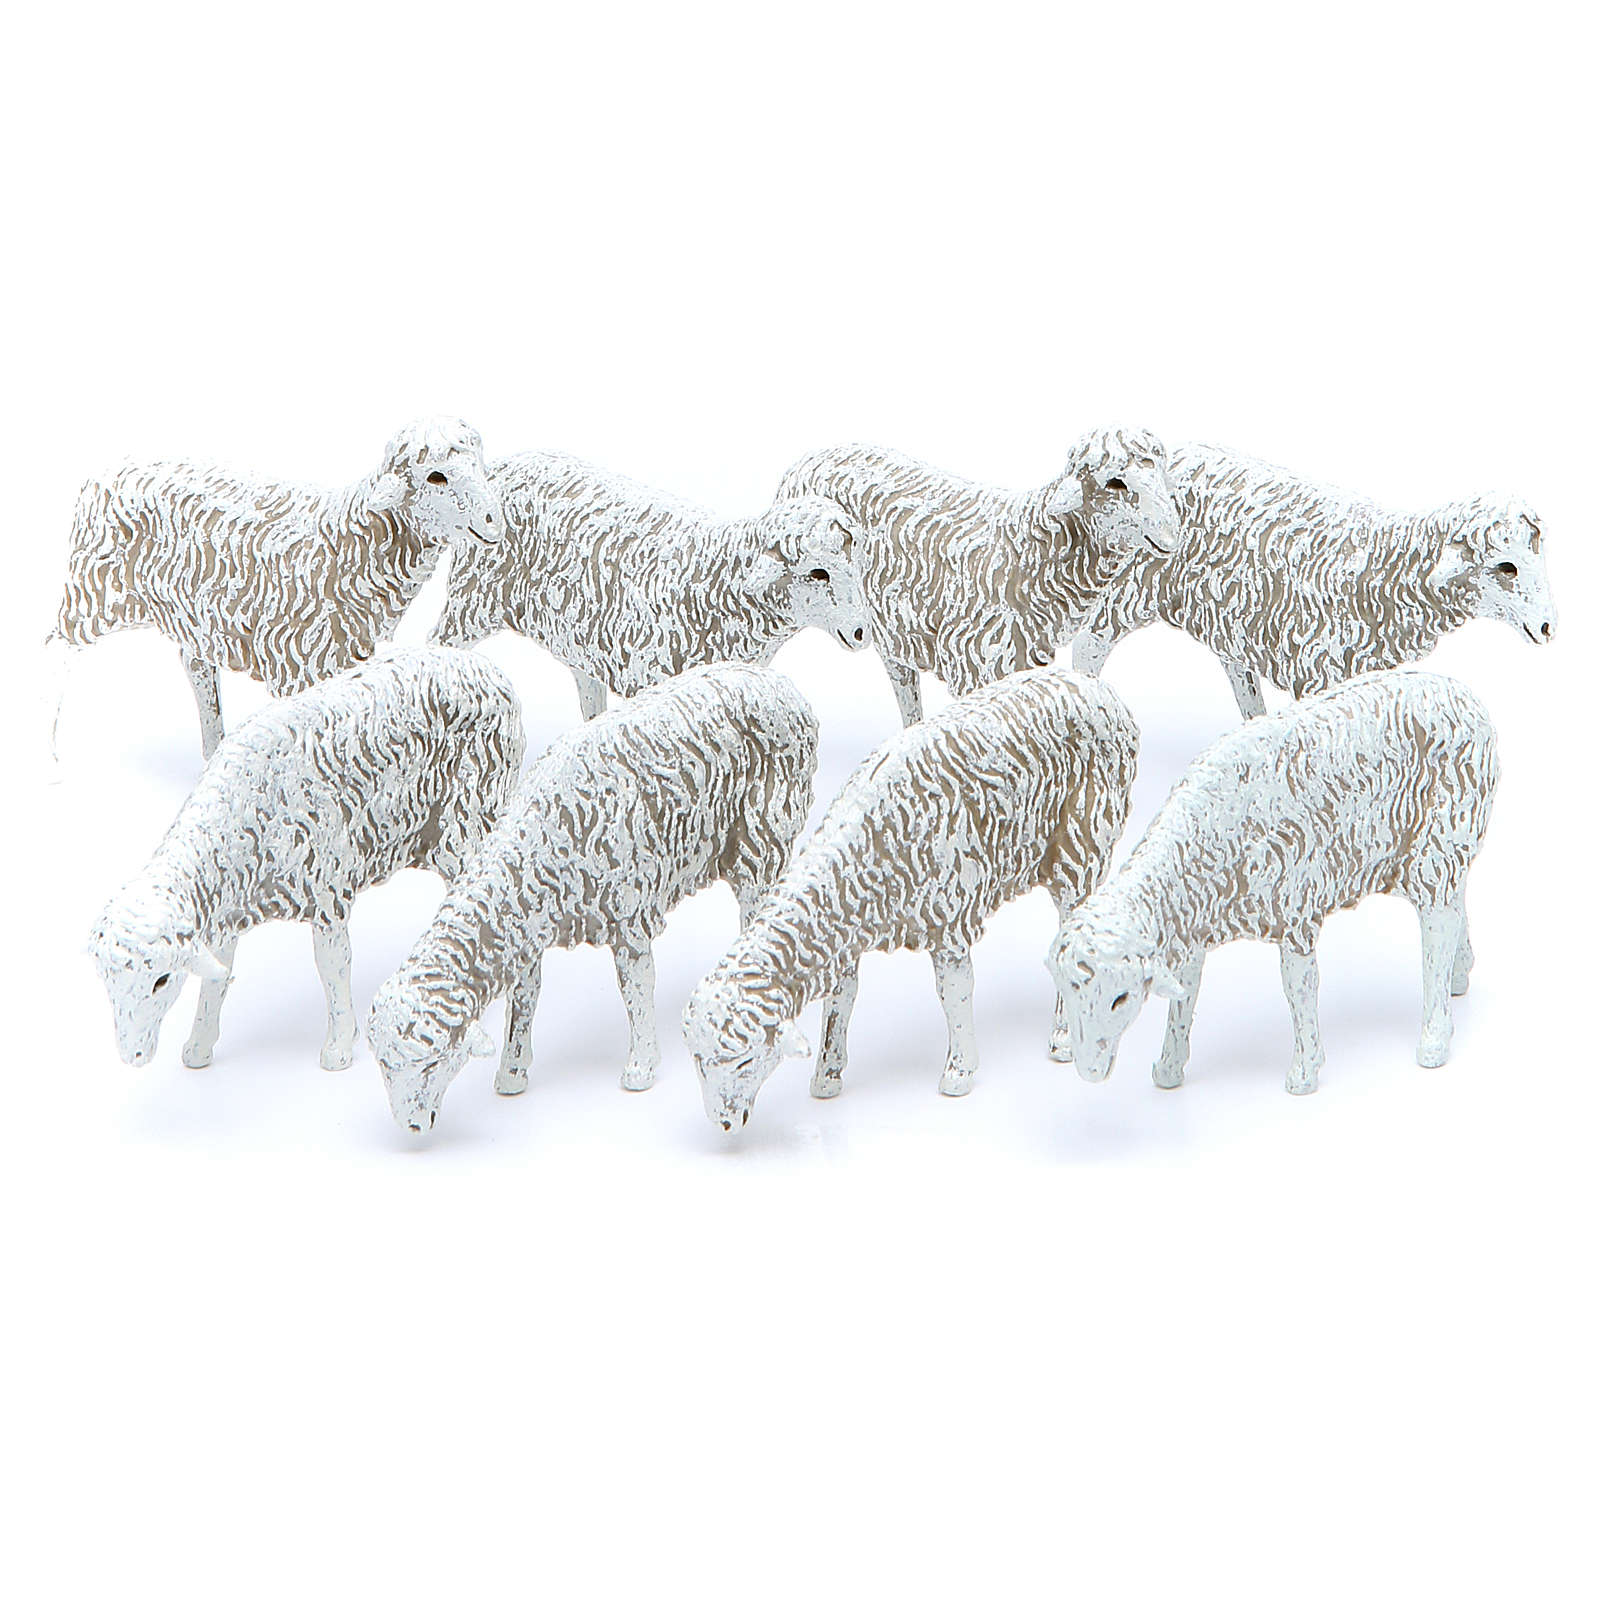 Sheep measuring 12cm by Moranduzzo nativity scene 4